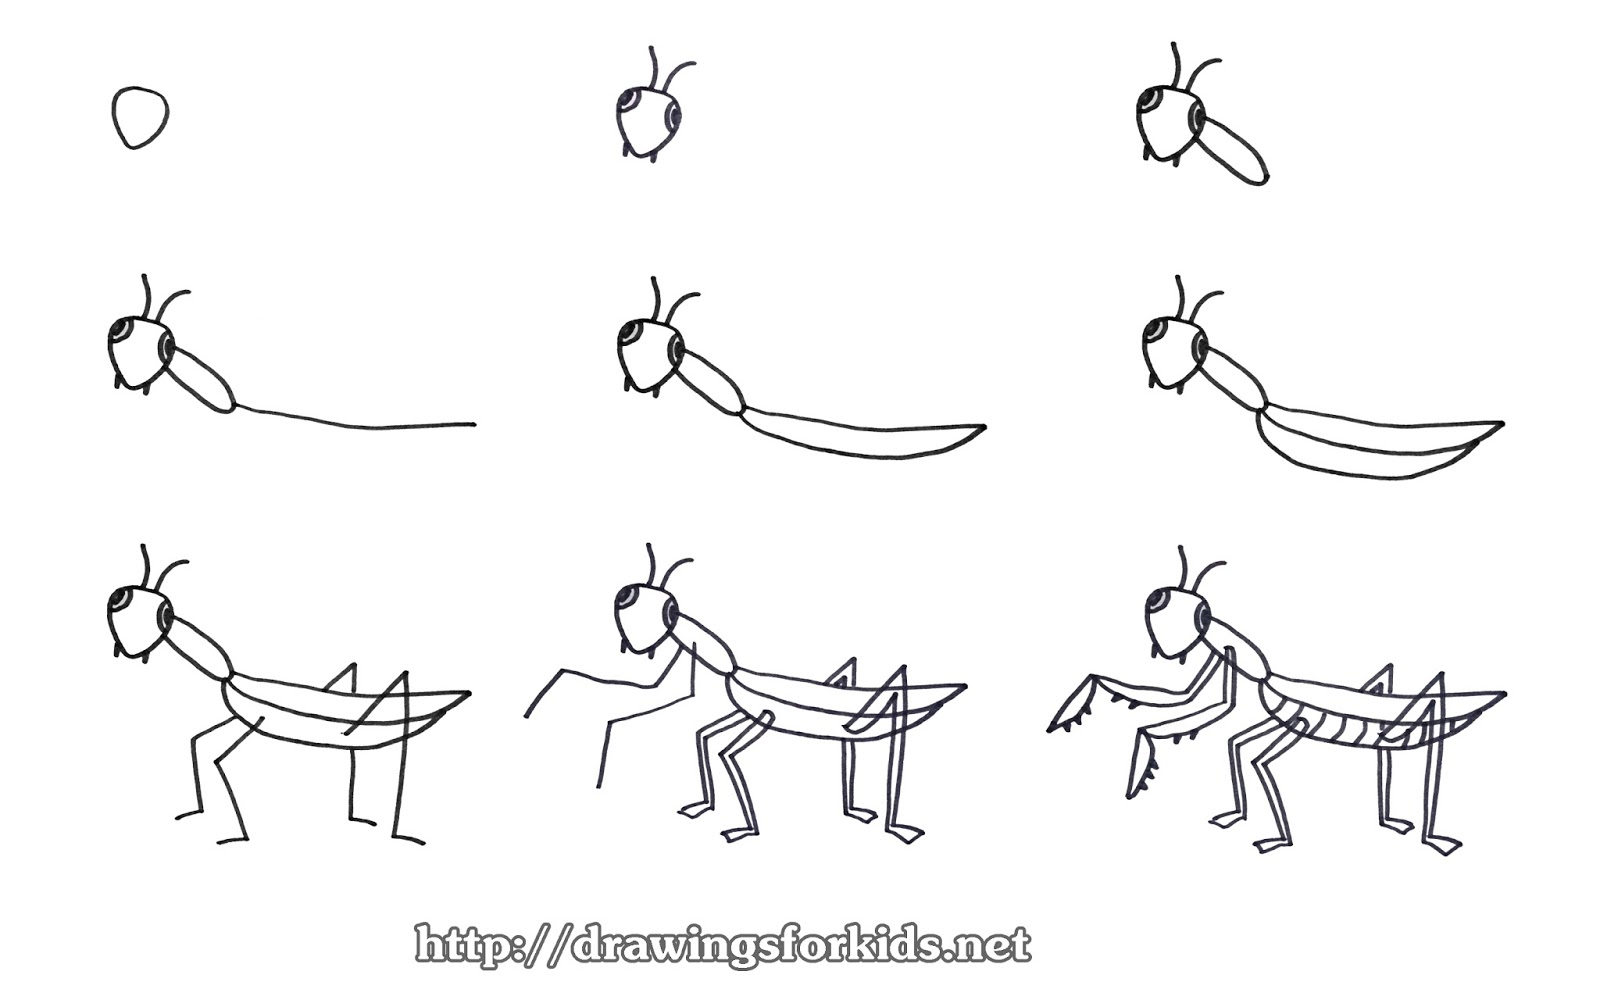 How To Draw A Praying Mantis Kids Drawingsforkids Net